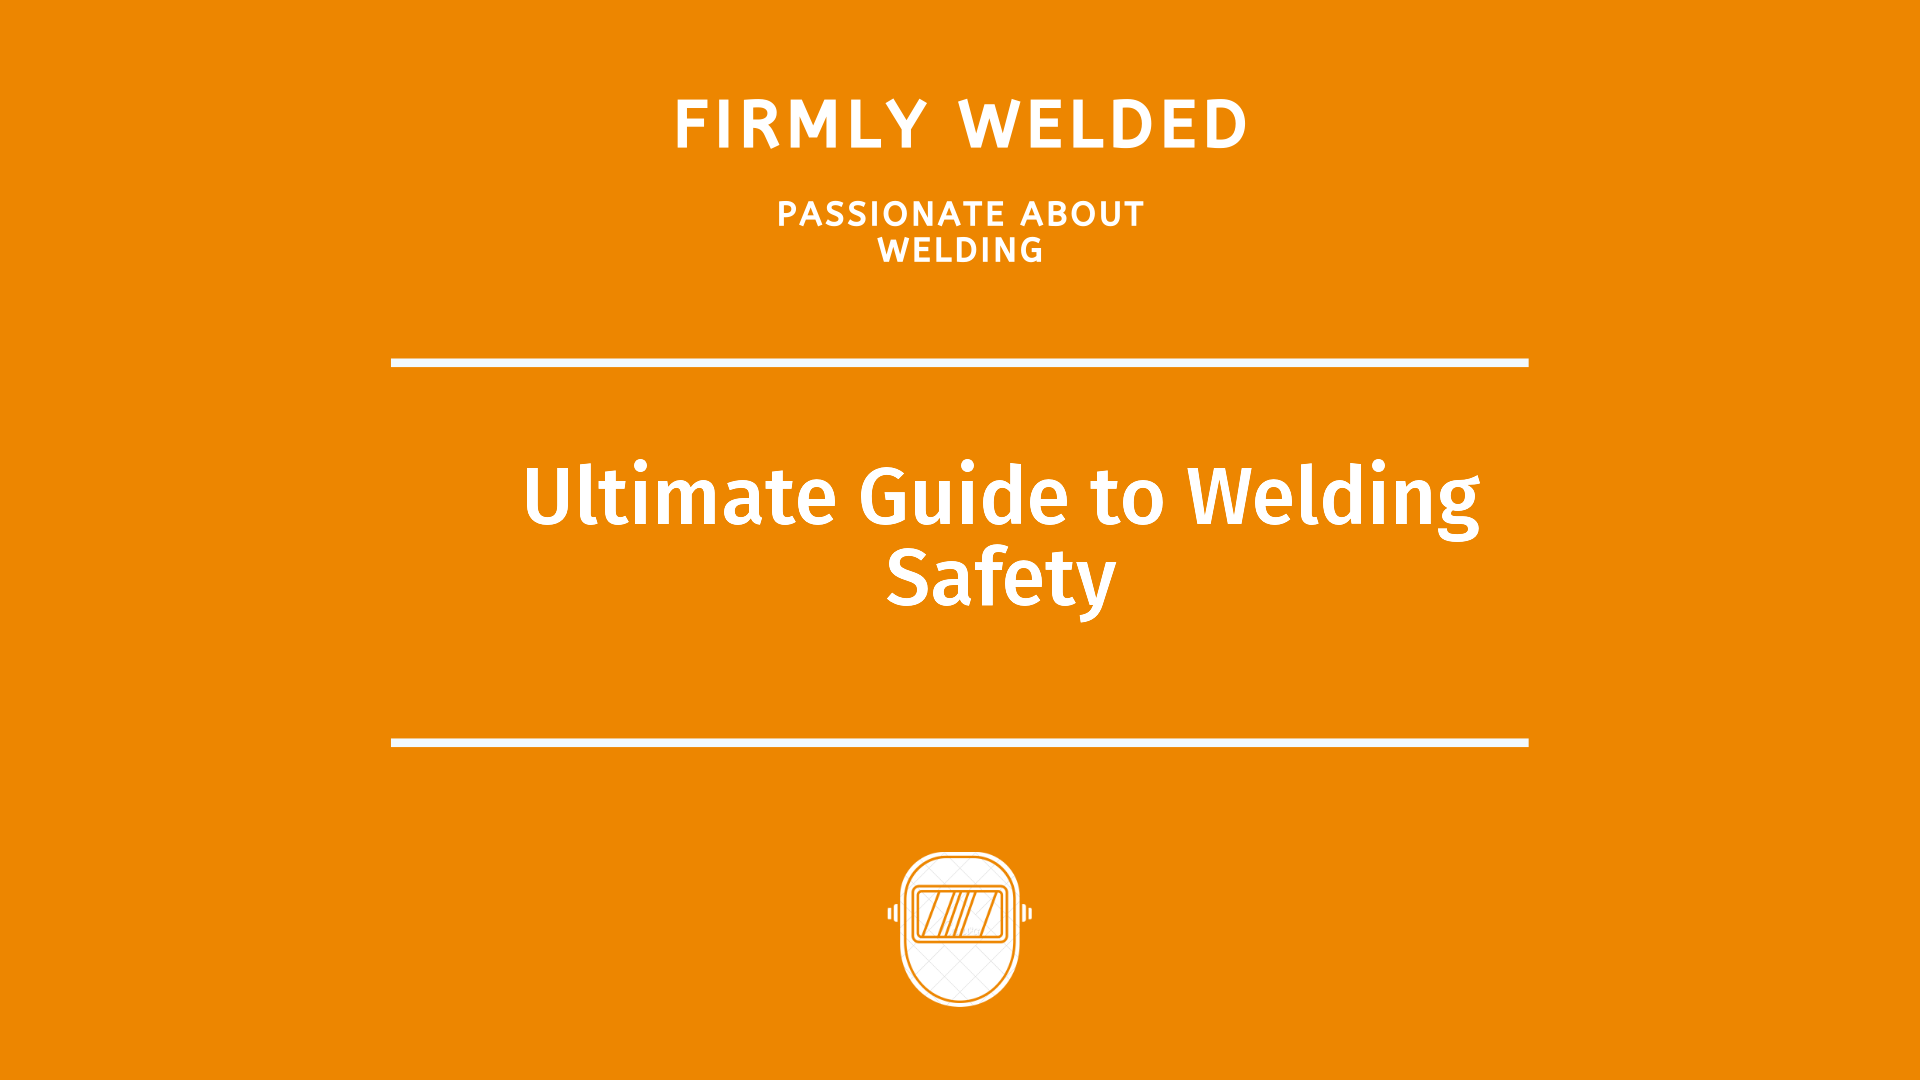 Ultimate Guide to Welding Safety